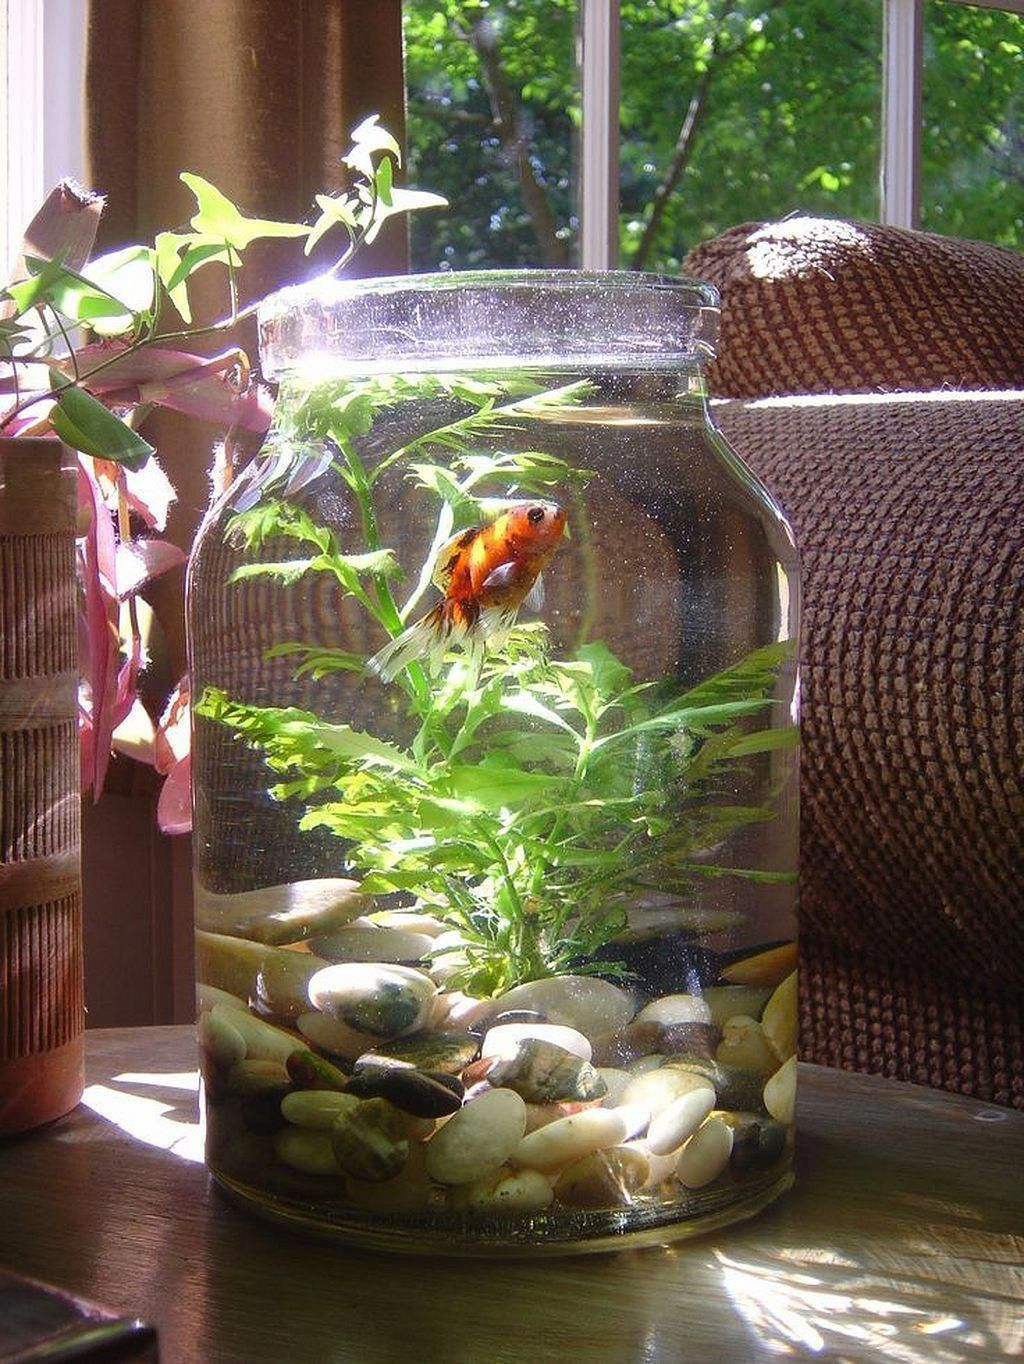 Diy Fish Tank Decorations Themes Aquascaping Fresh Water Decor Ideas Small Aquascaping Homemade Creative Aquascaping Cool Simple Ideas Un With Images Indoor Water Garden